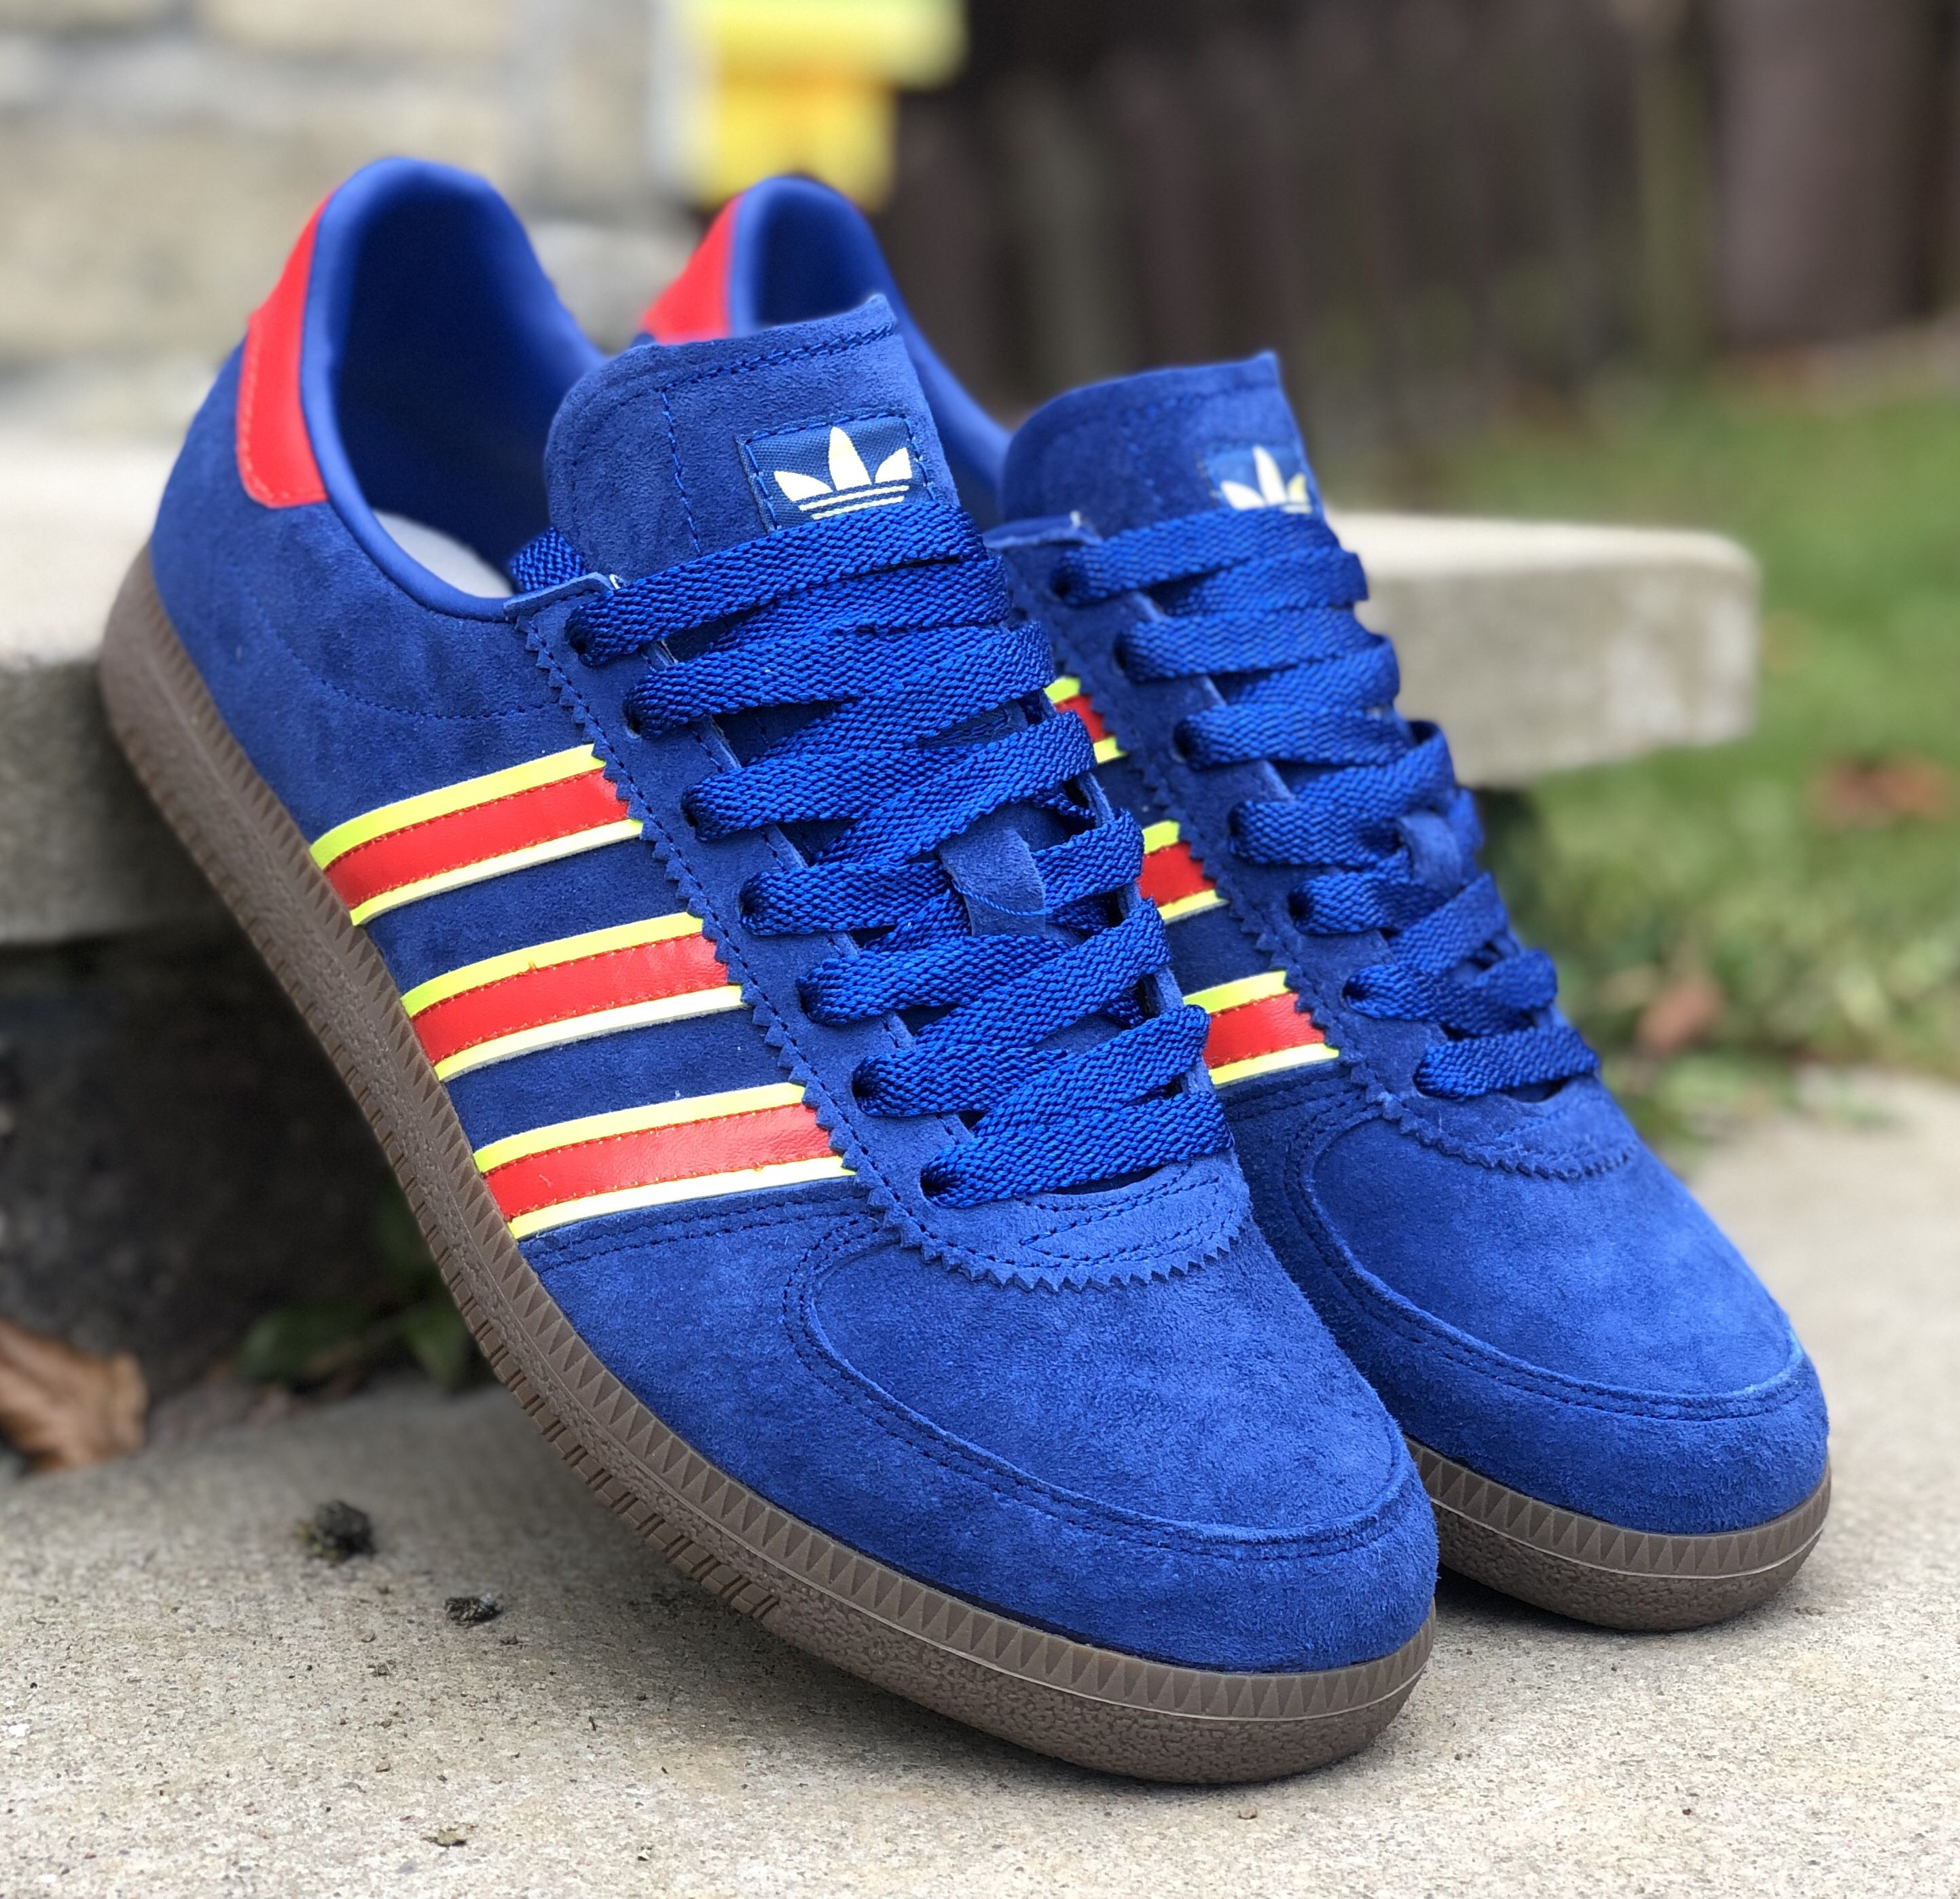 Adidas Settend Spezial Adidas, Adidas sneakers, Sneakers